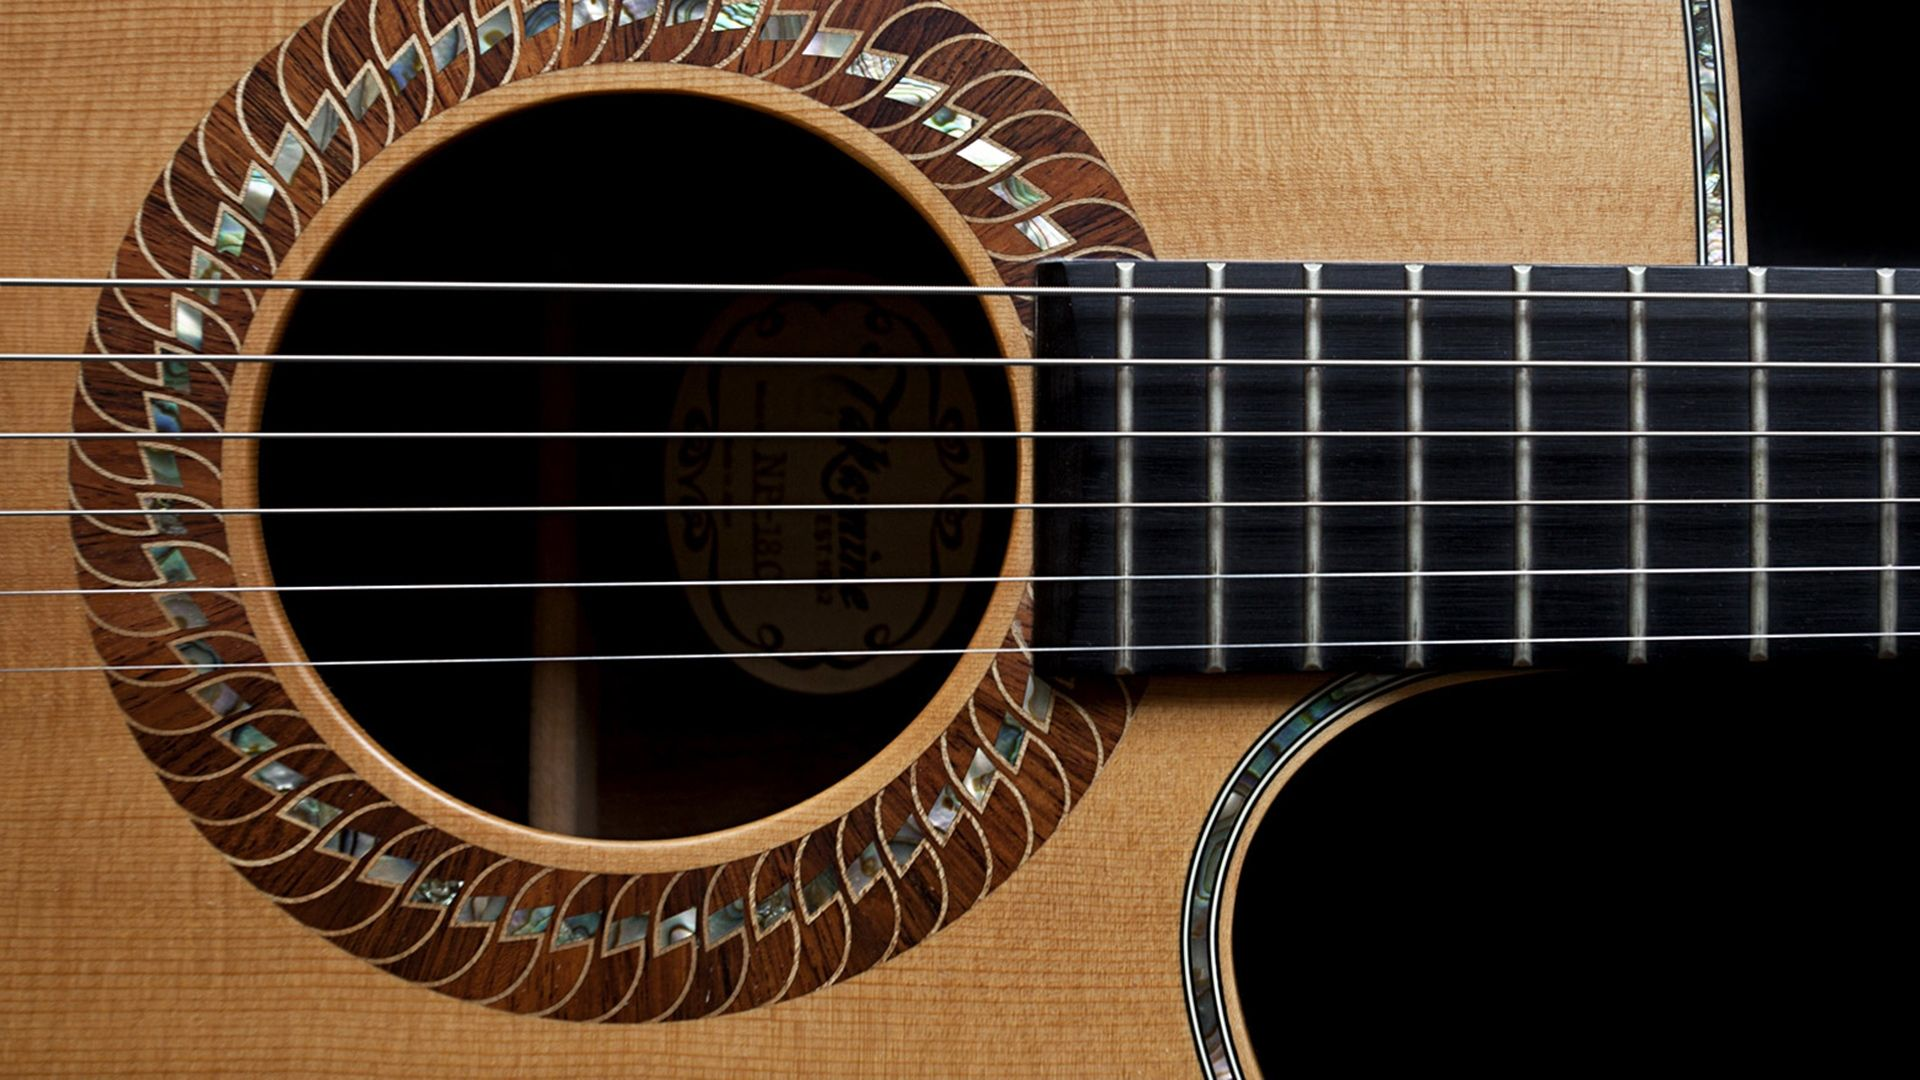 Acoustic Guitar, Free Wallpaper and Background